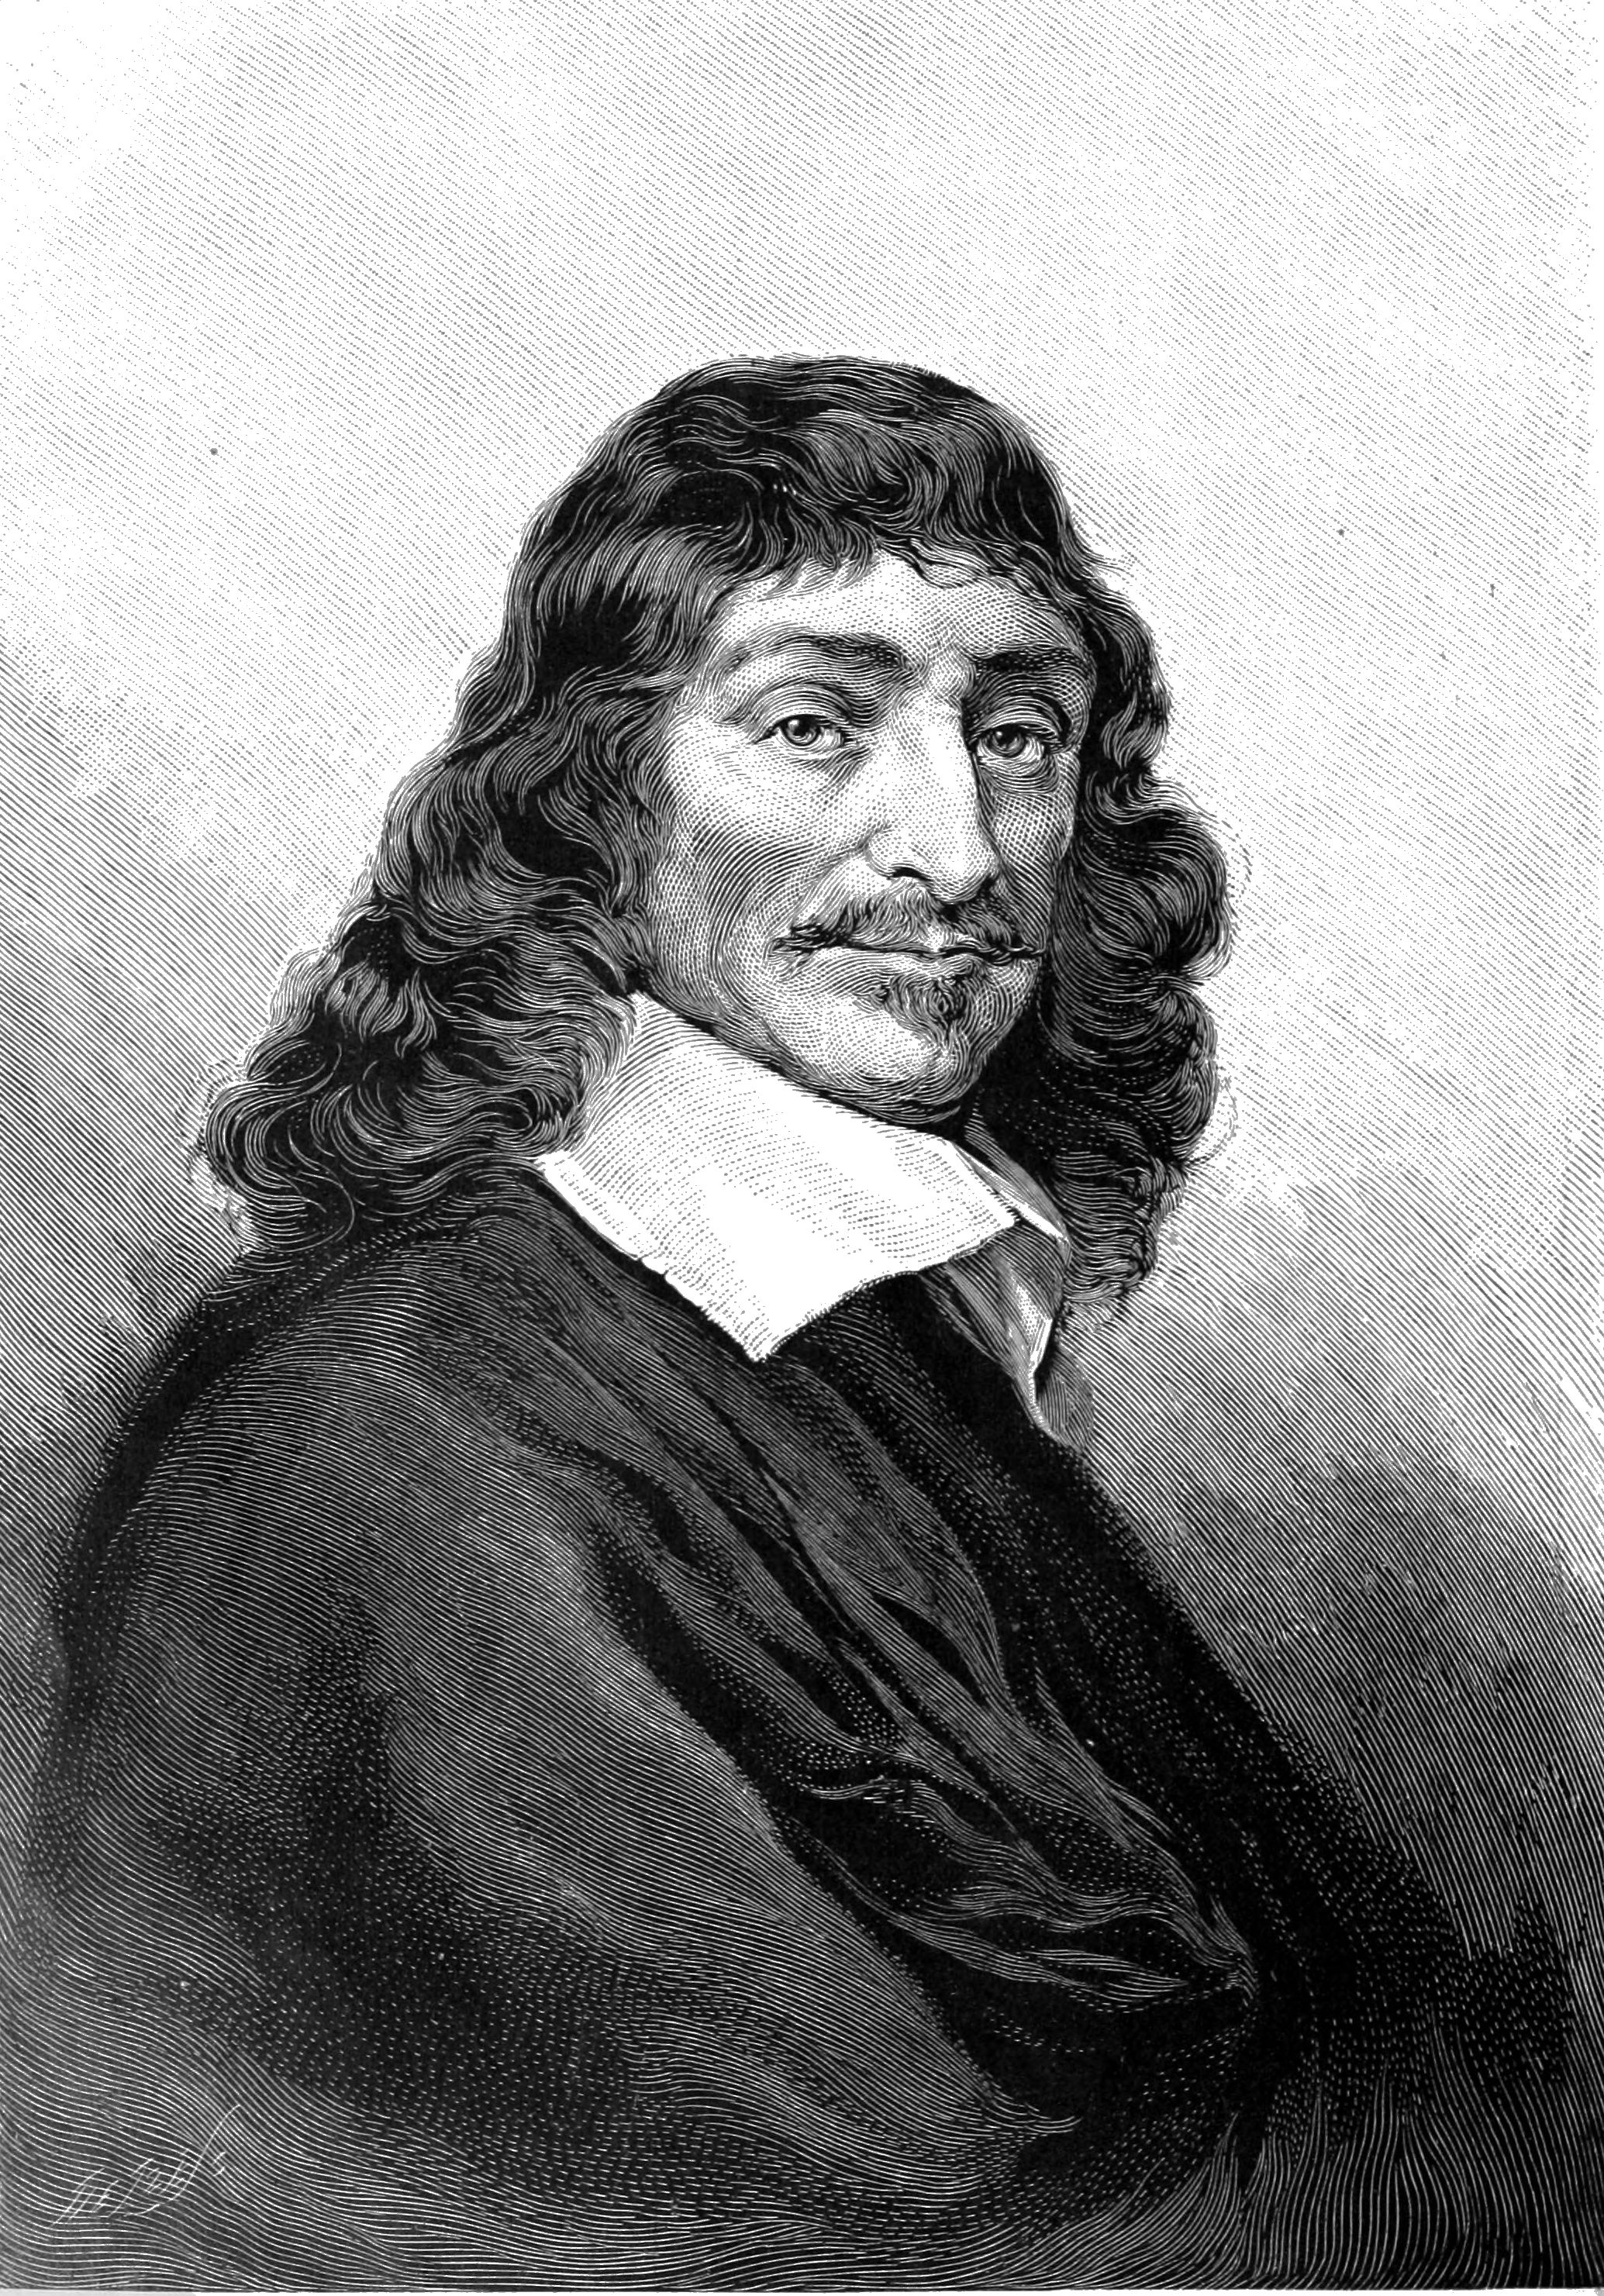 File:PSM V37 D740 Rene Descartes.jpg - Wikimedia Commons